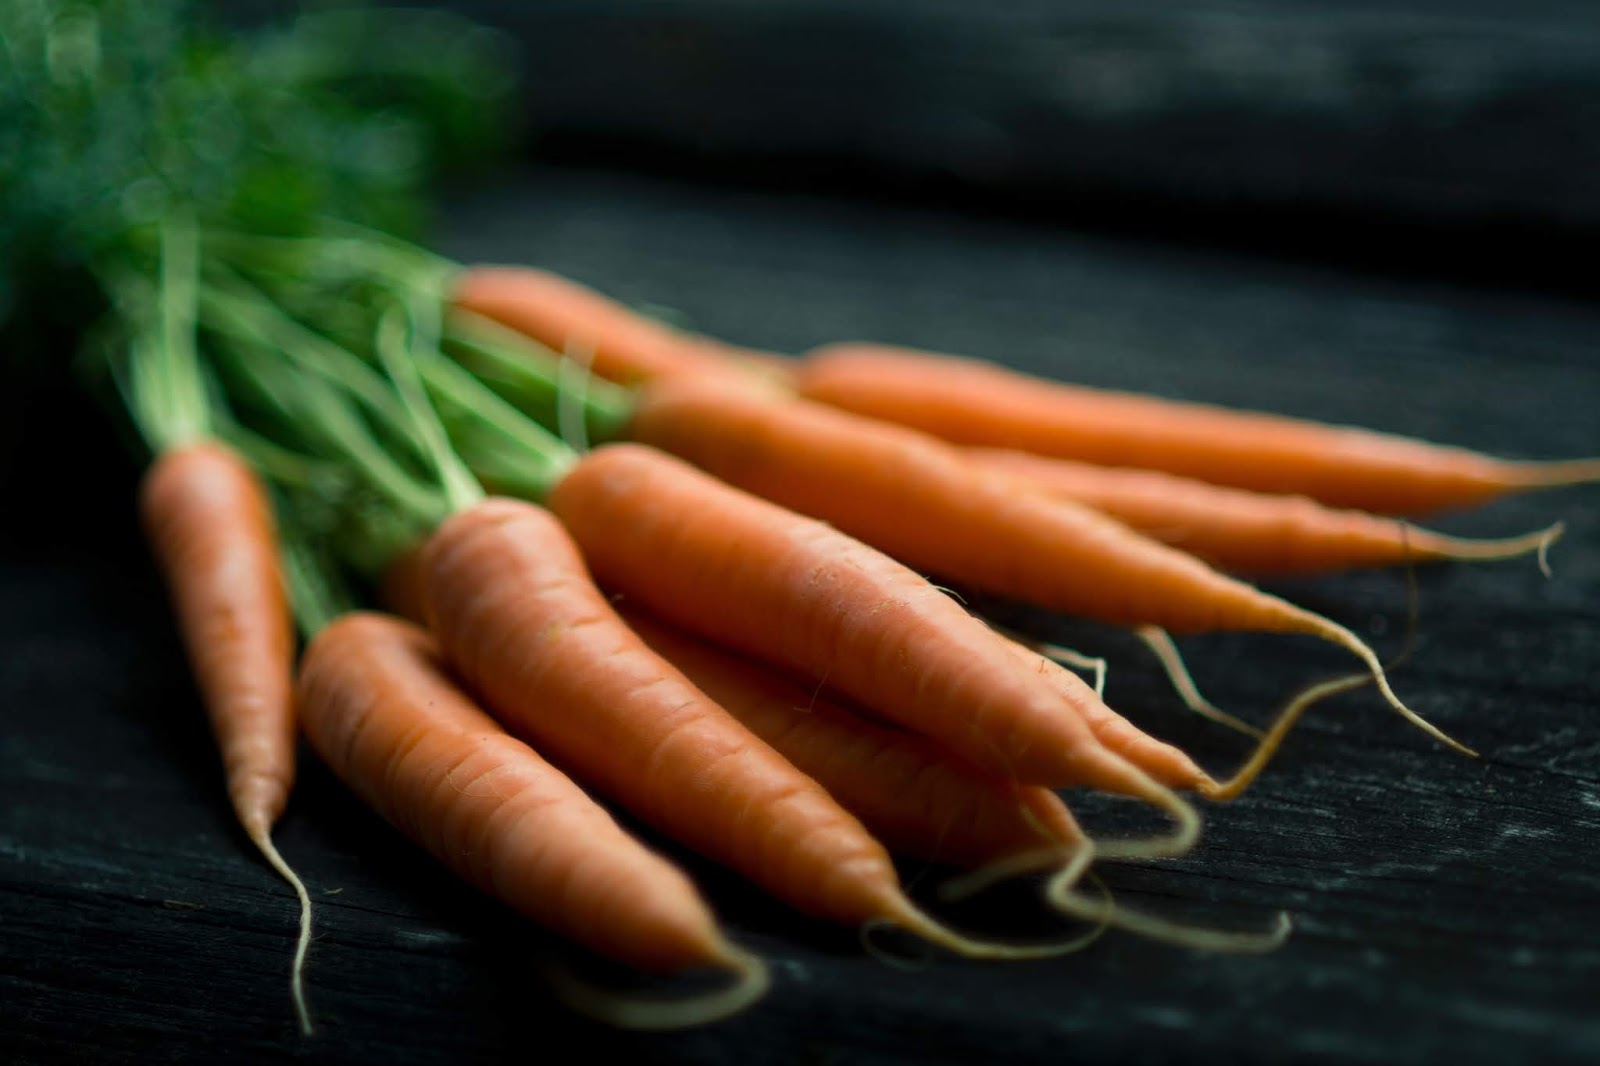 close up of fresh carrots on a table